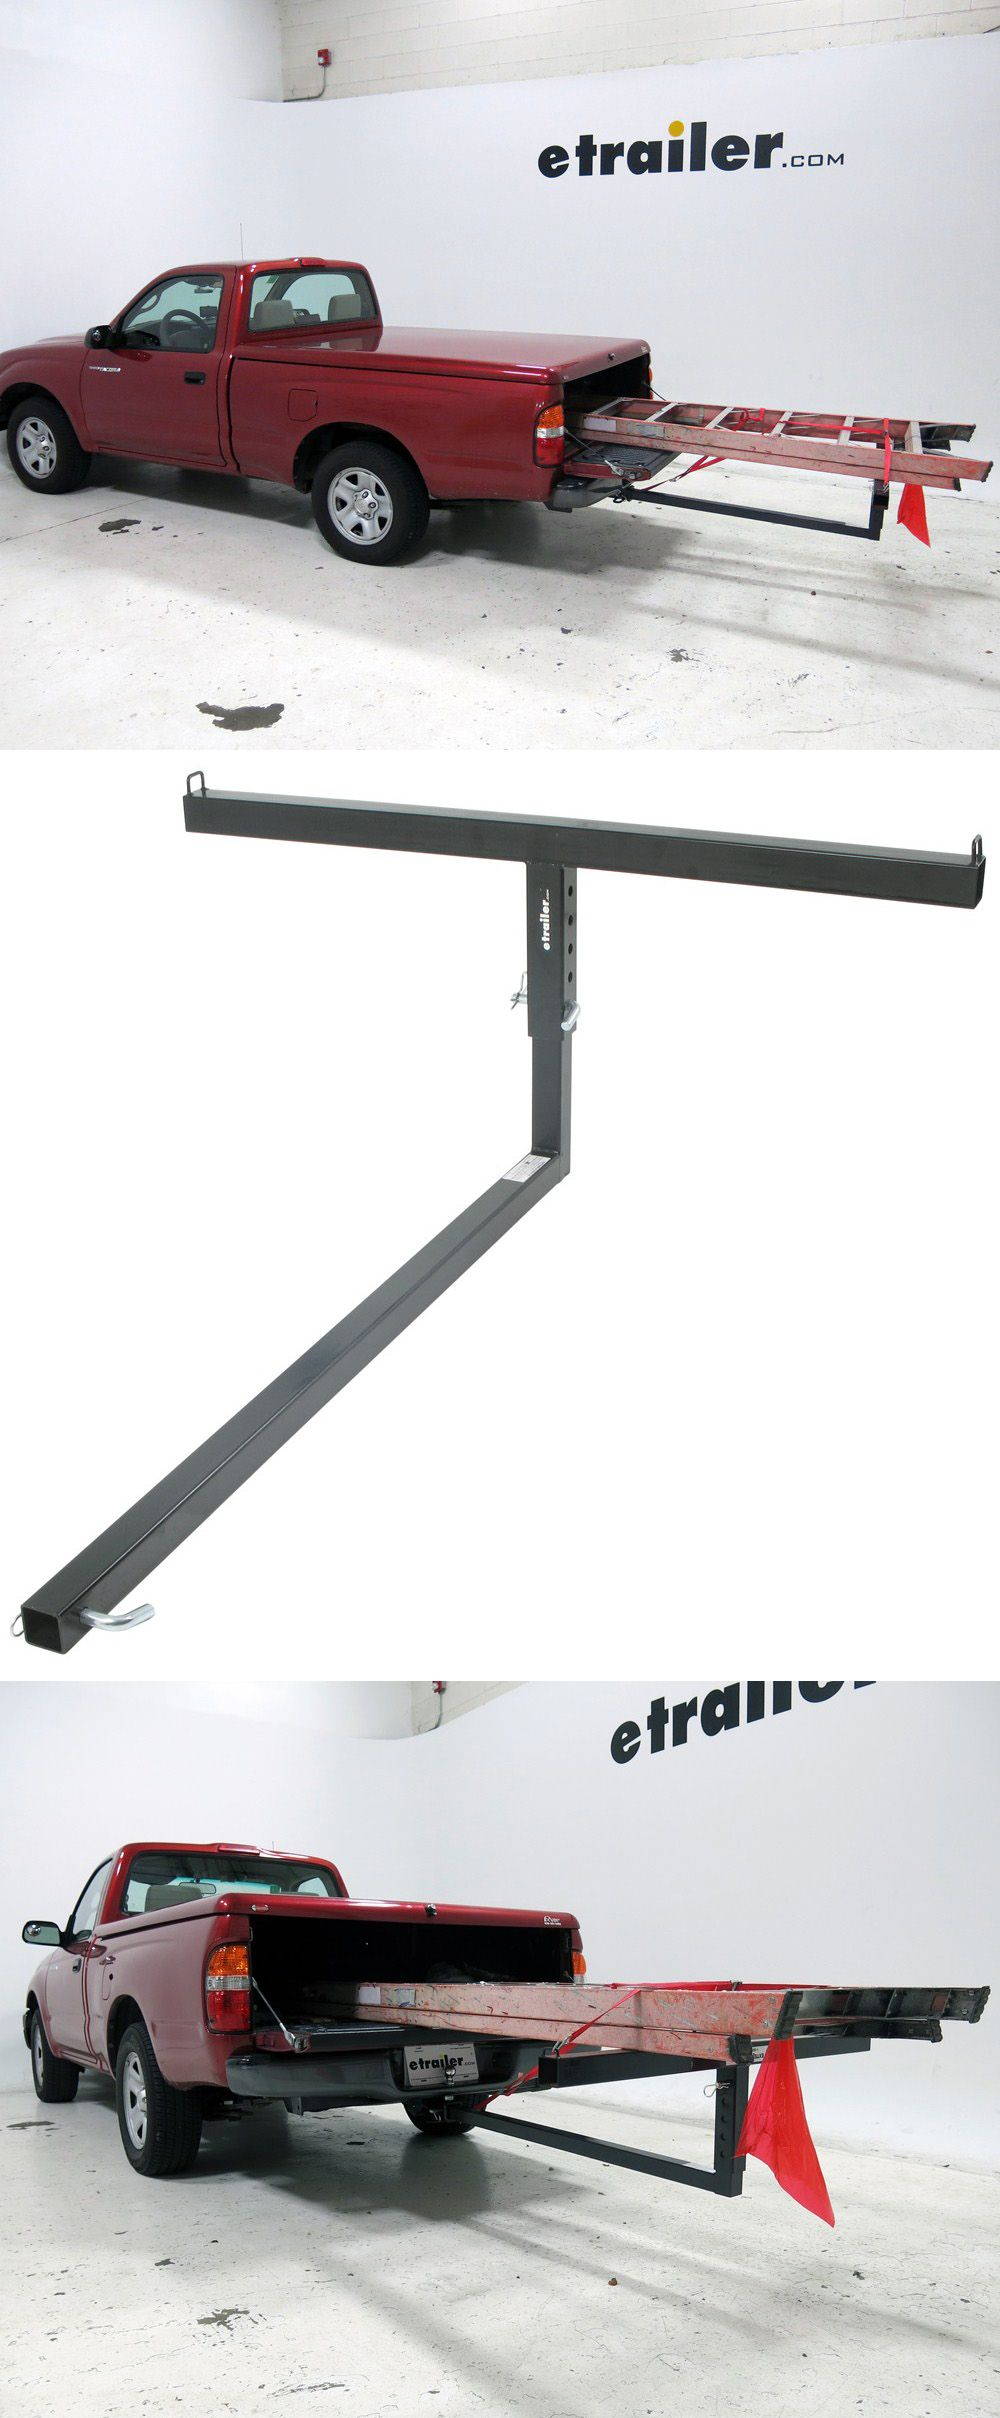 Trailer Hitch Luggage Rack Darby Extendatruck Hitch Mounted Load Extender  Roof Or Truck Bed